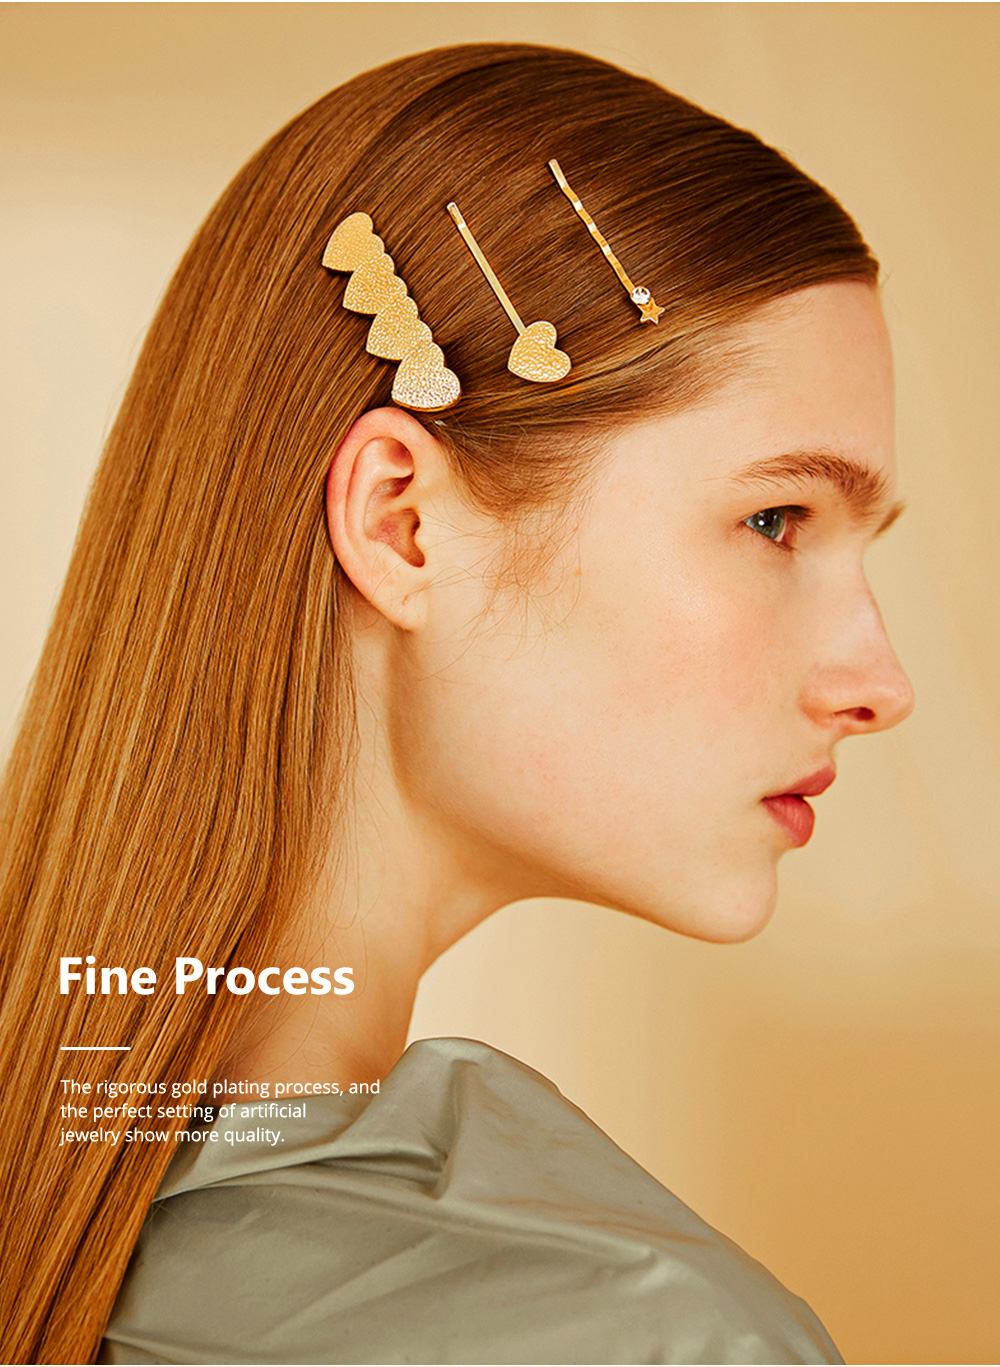 3 Pieces Metal Gold Hair Pins for Girls Women Hair Styling Barrette Accessories with Simple Round and Star Shaped 4